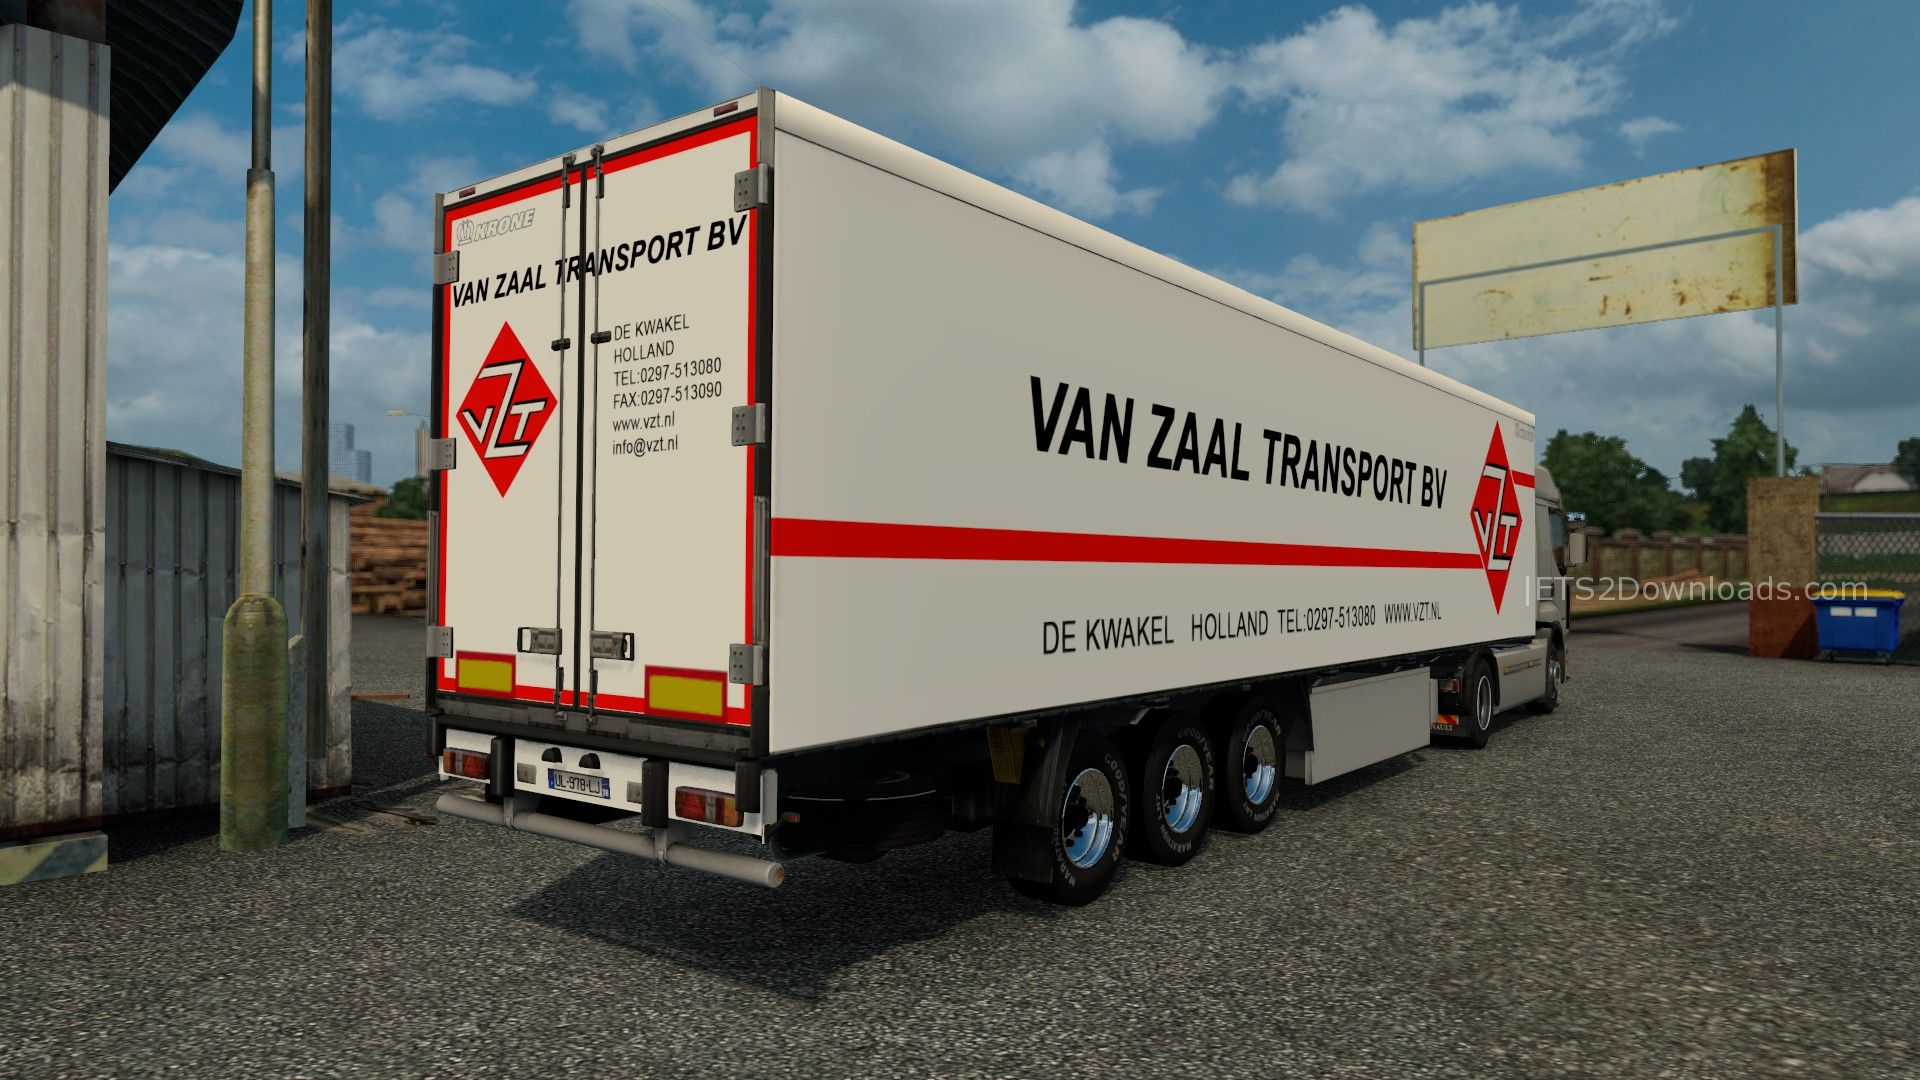 van-zaal-transport-trailer-2